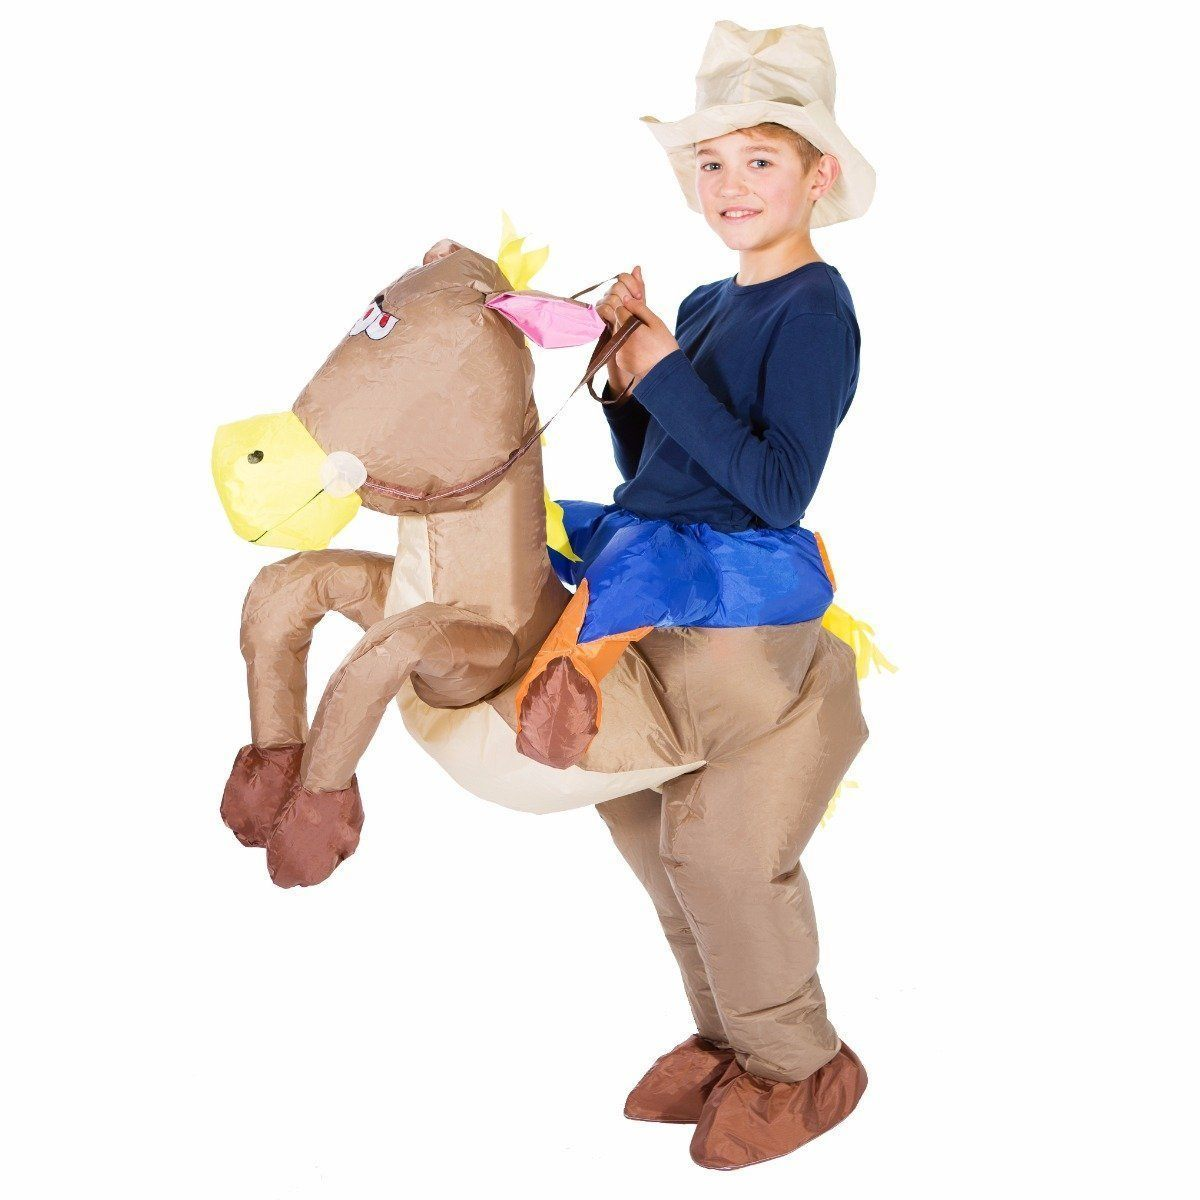 Fancy Dress - Kids Inflatable Cowboy Costume